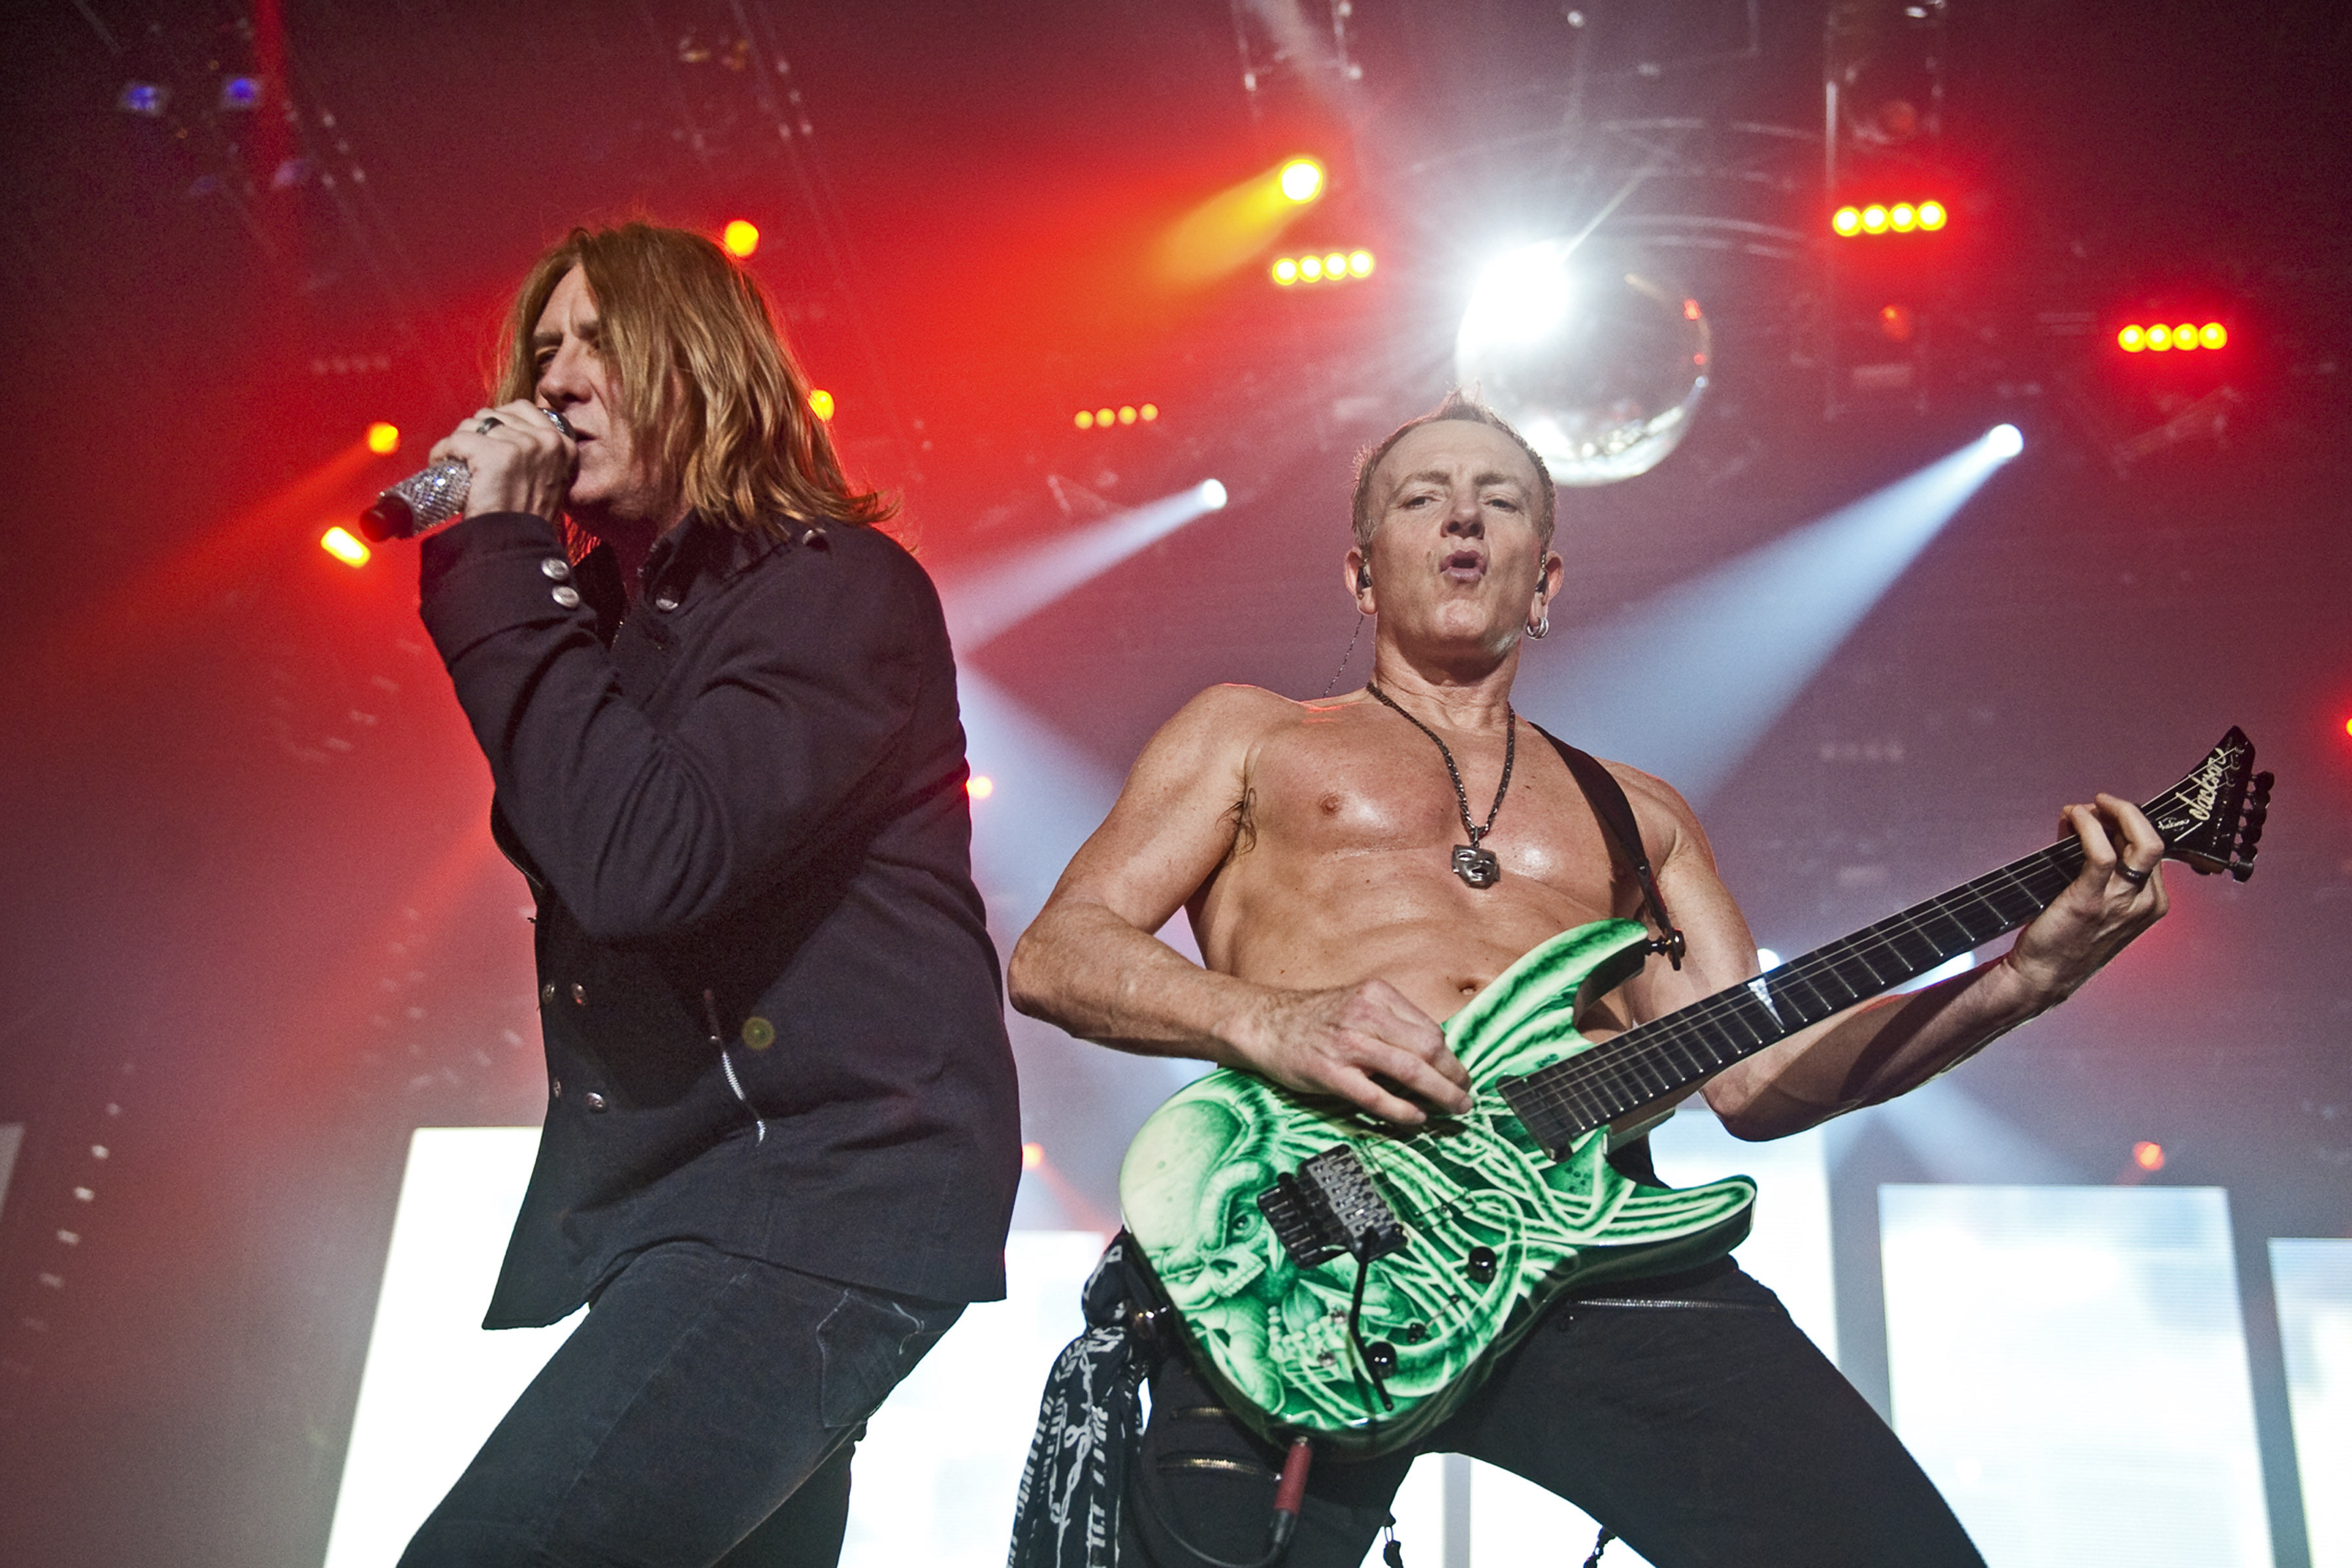 Def Leppard And Steel Panther Perform At Wembley Arena